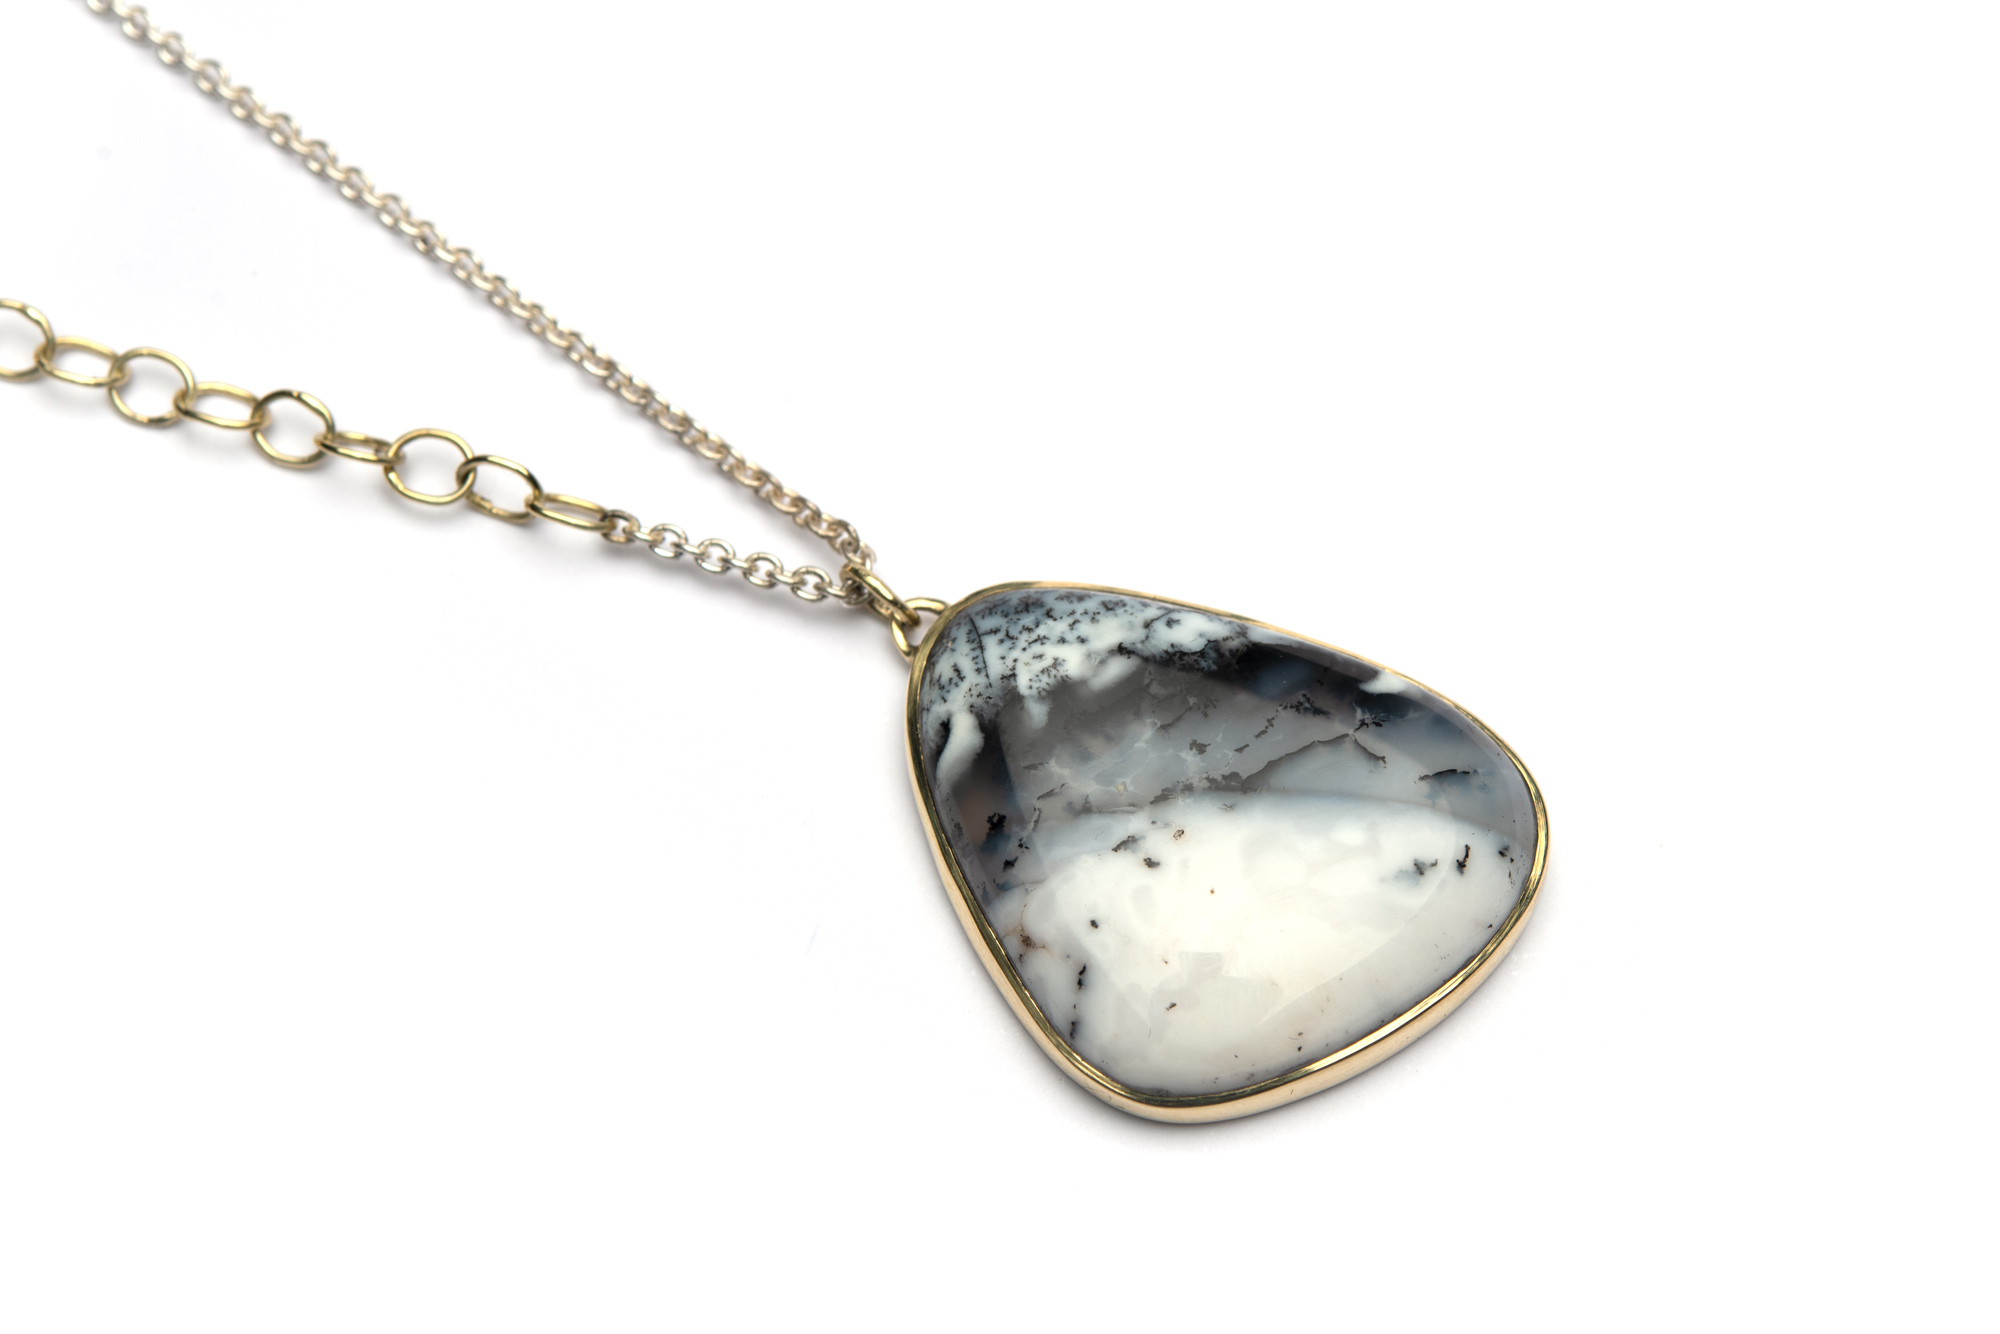 Ketting CONNECTION DENDRIET OPAAL Zilver & Goud